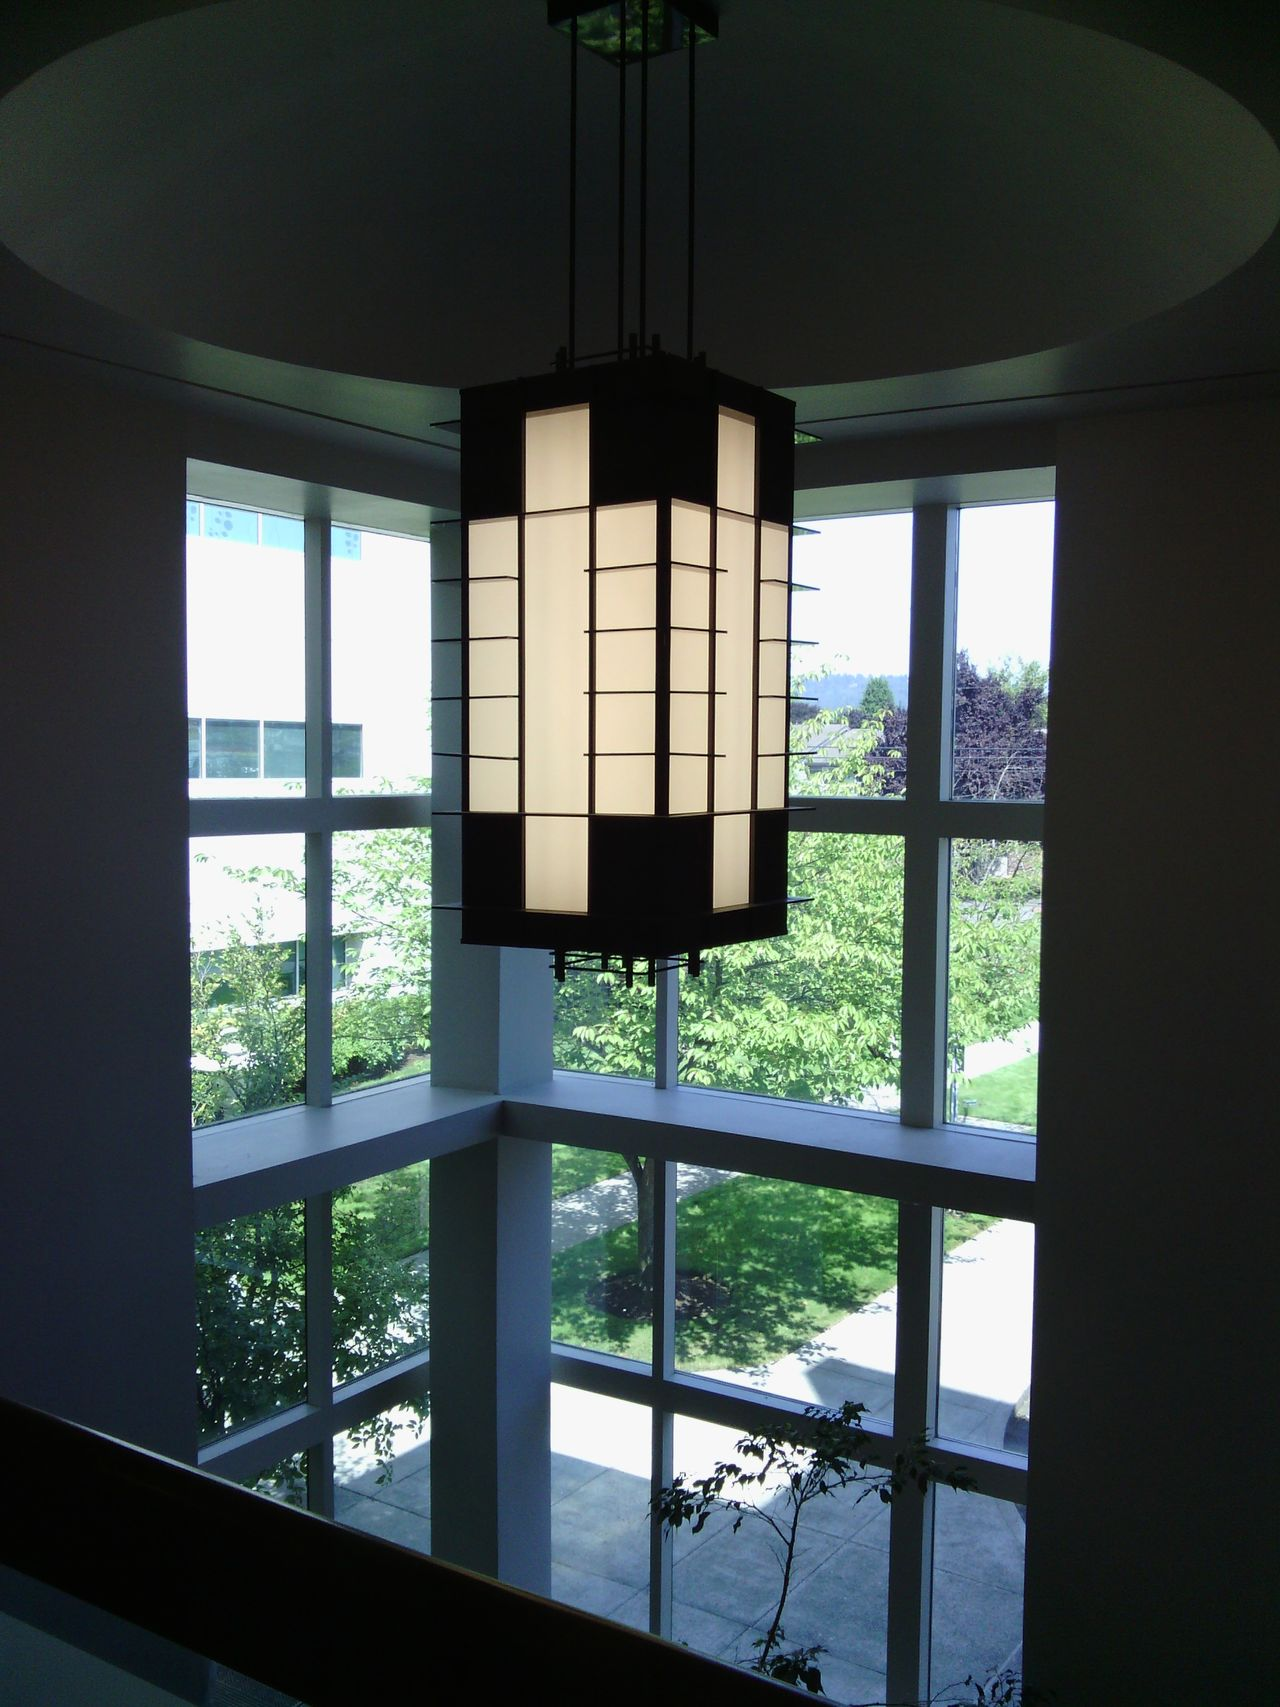 Lamp and window high in the lobby. Lamp Window Architecture Design